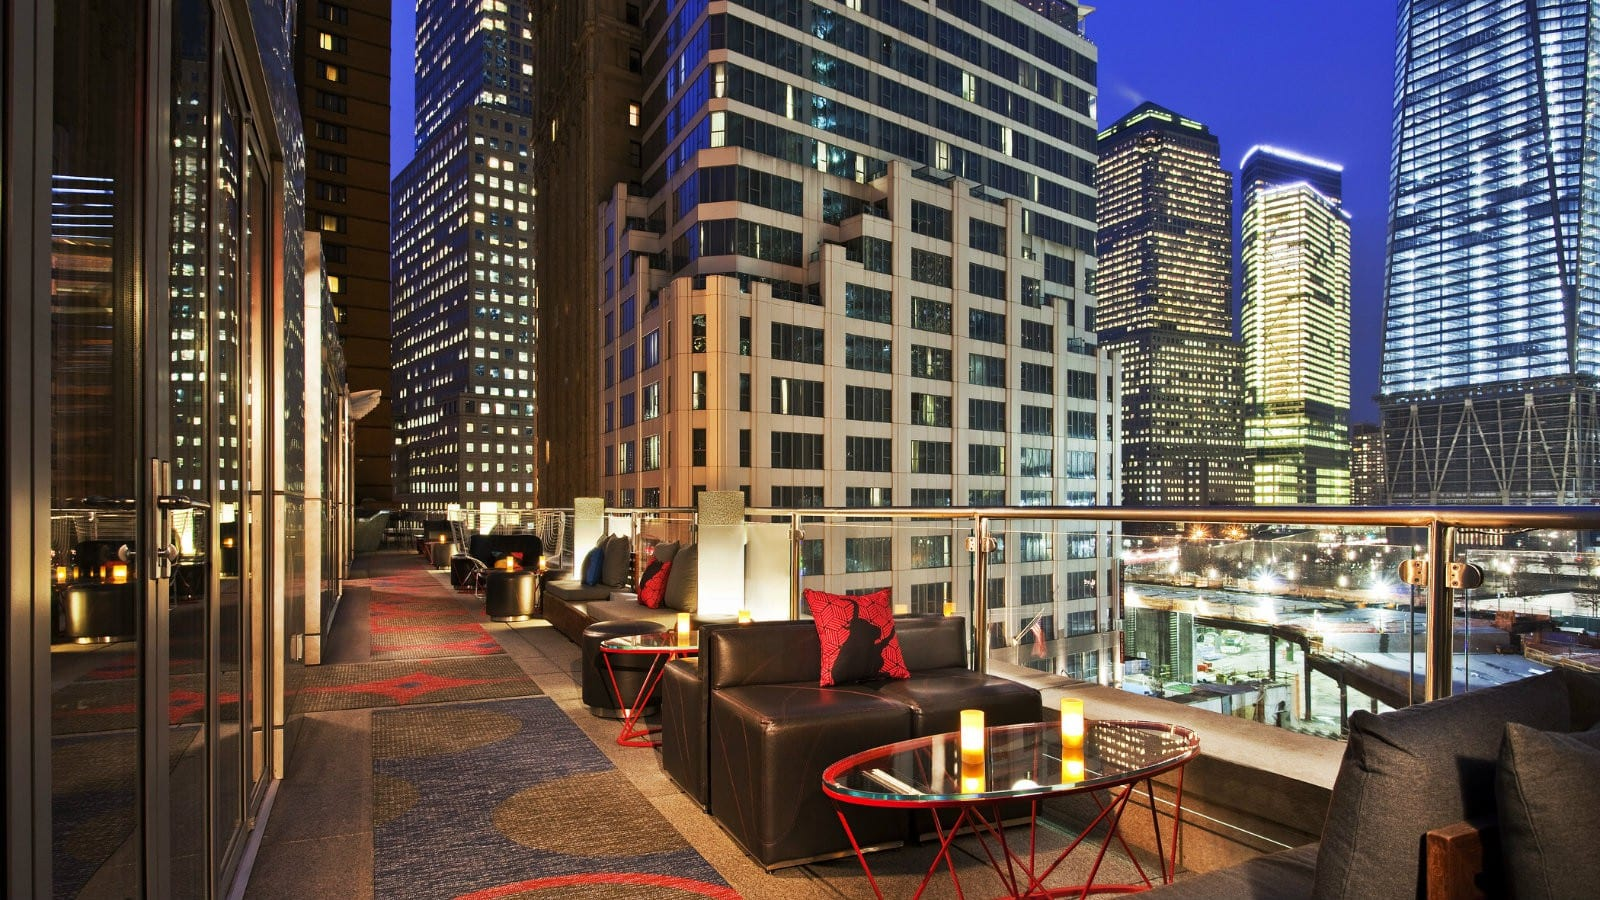 Hotel Review: W NYC Hotel Downtown, Cool Corner Room